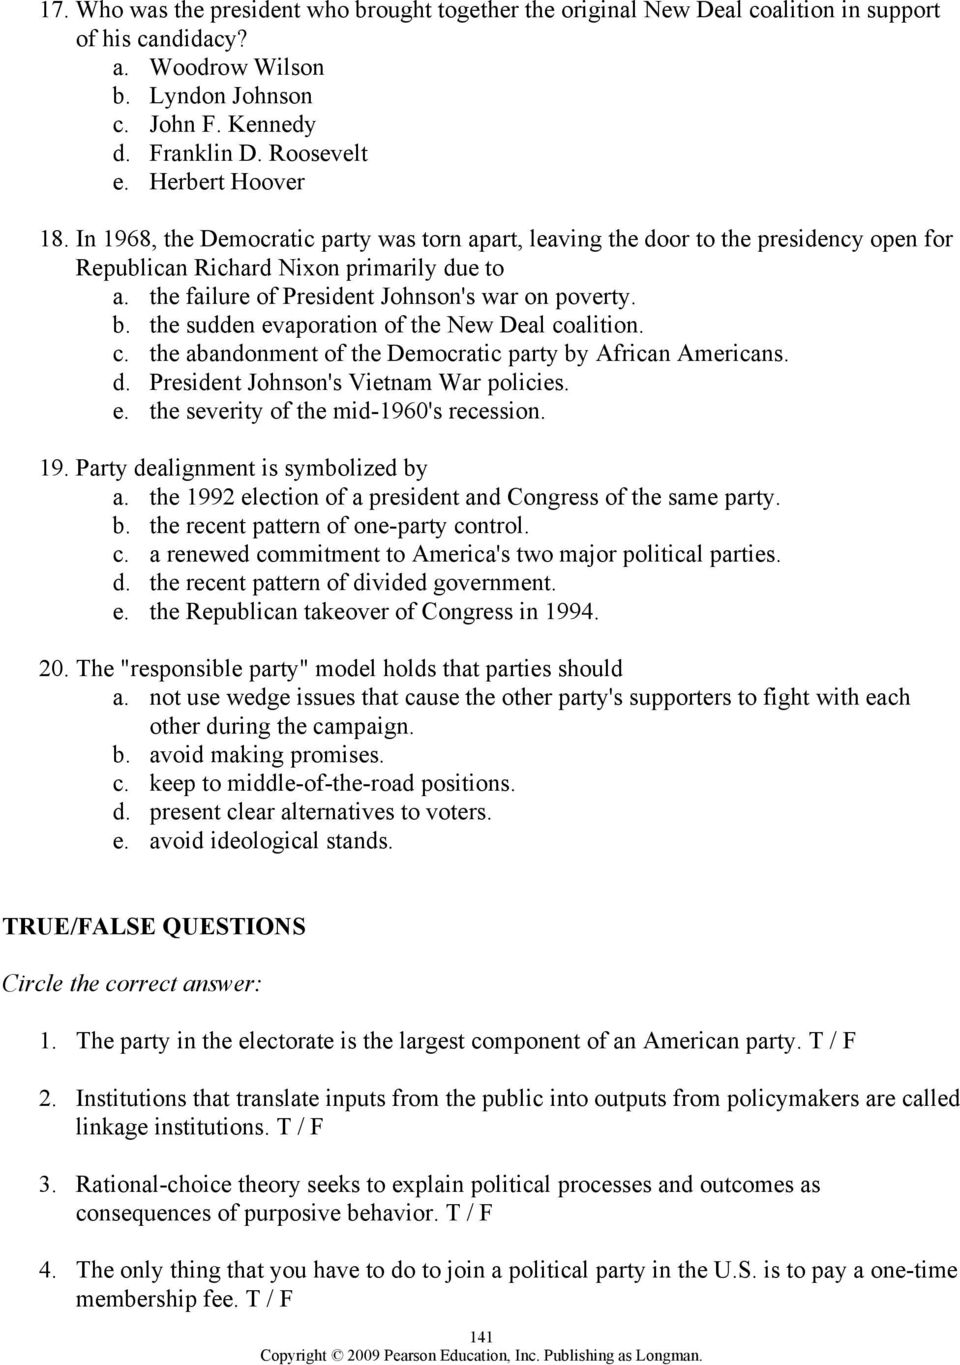 worksheet The Populist Movement The Value Of Third Parties Worksheet Answers chapter 8 political parties outline pdf the failure of president johnsons war on poverty b sudden evaporation the